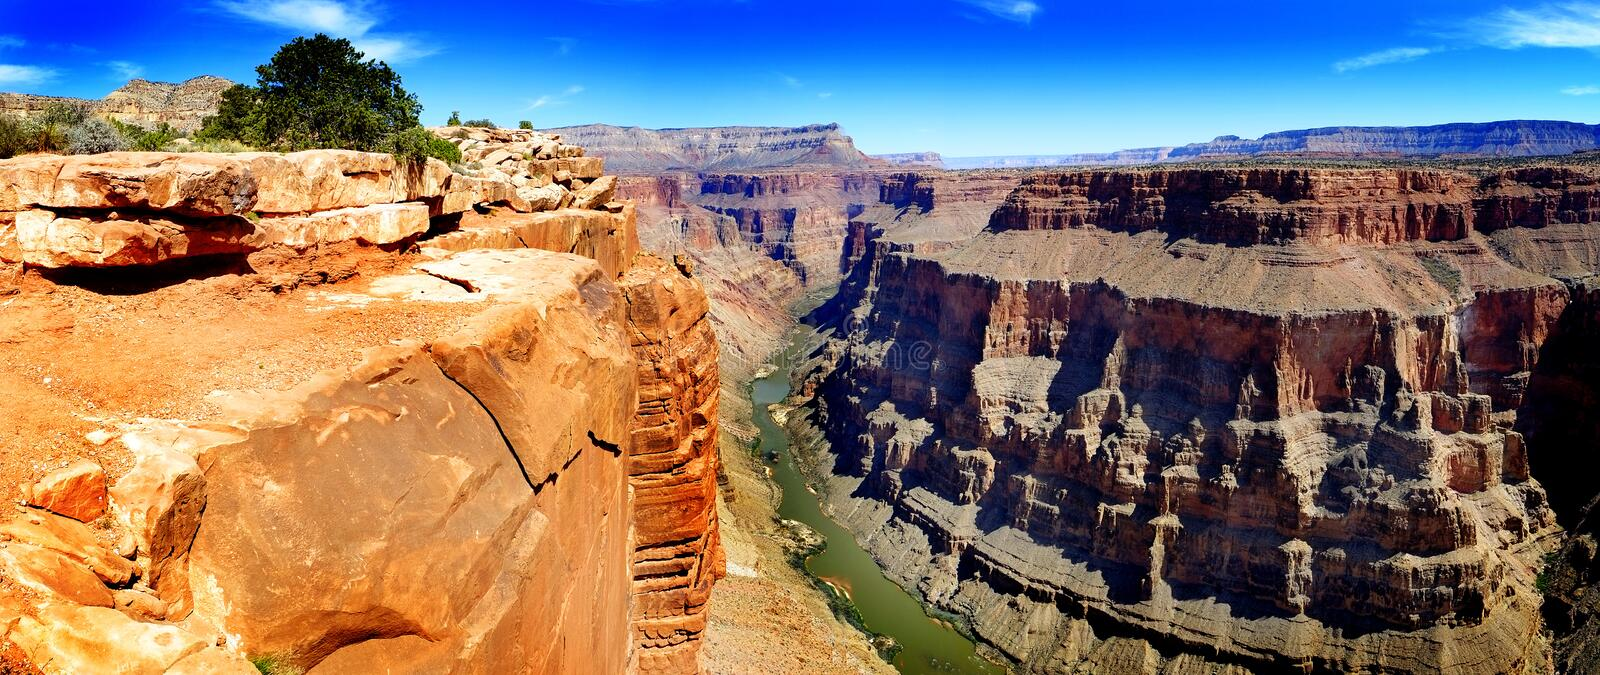 Grand Canyon with Colorado River Gorge Landmark stock photography